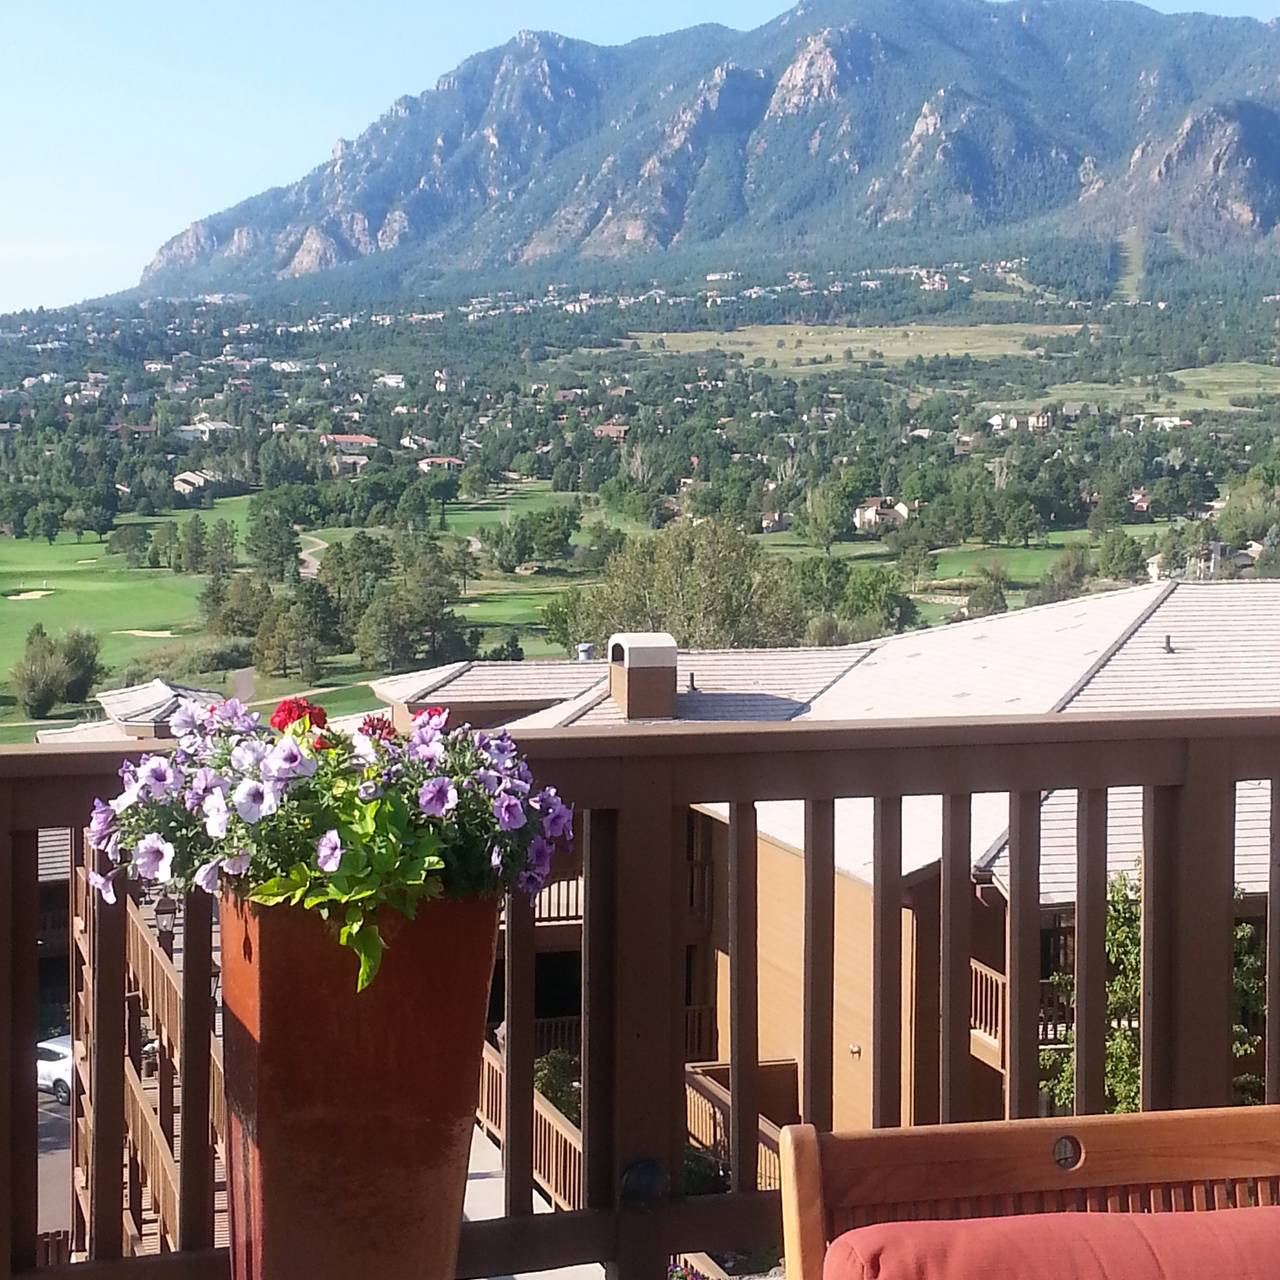 mountain view restaurant at cheyenne mountain colorado springs, a